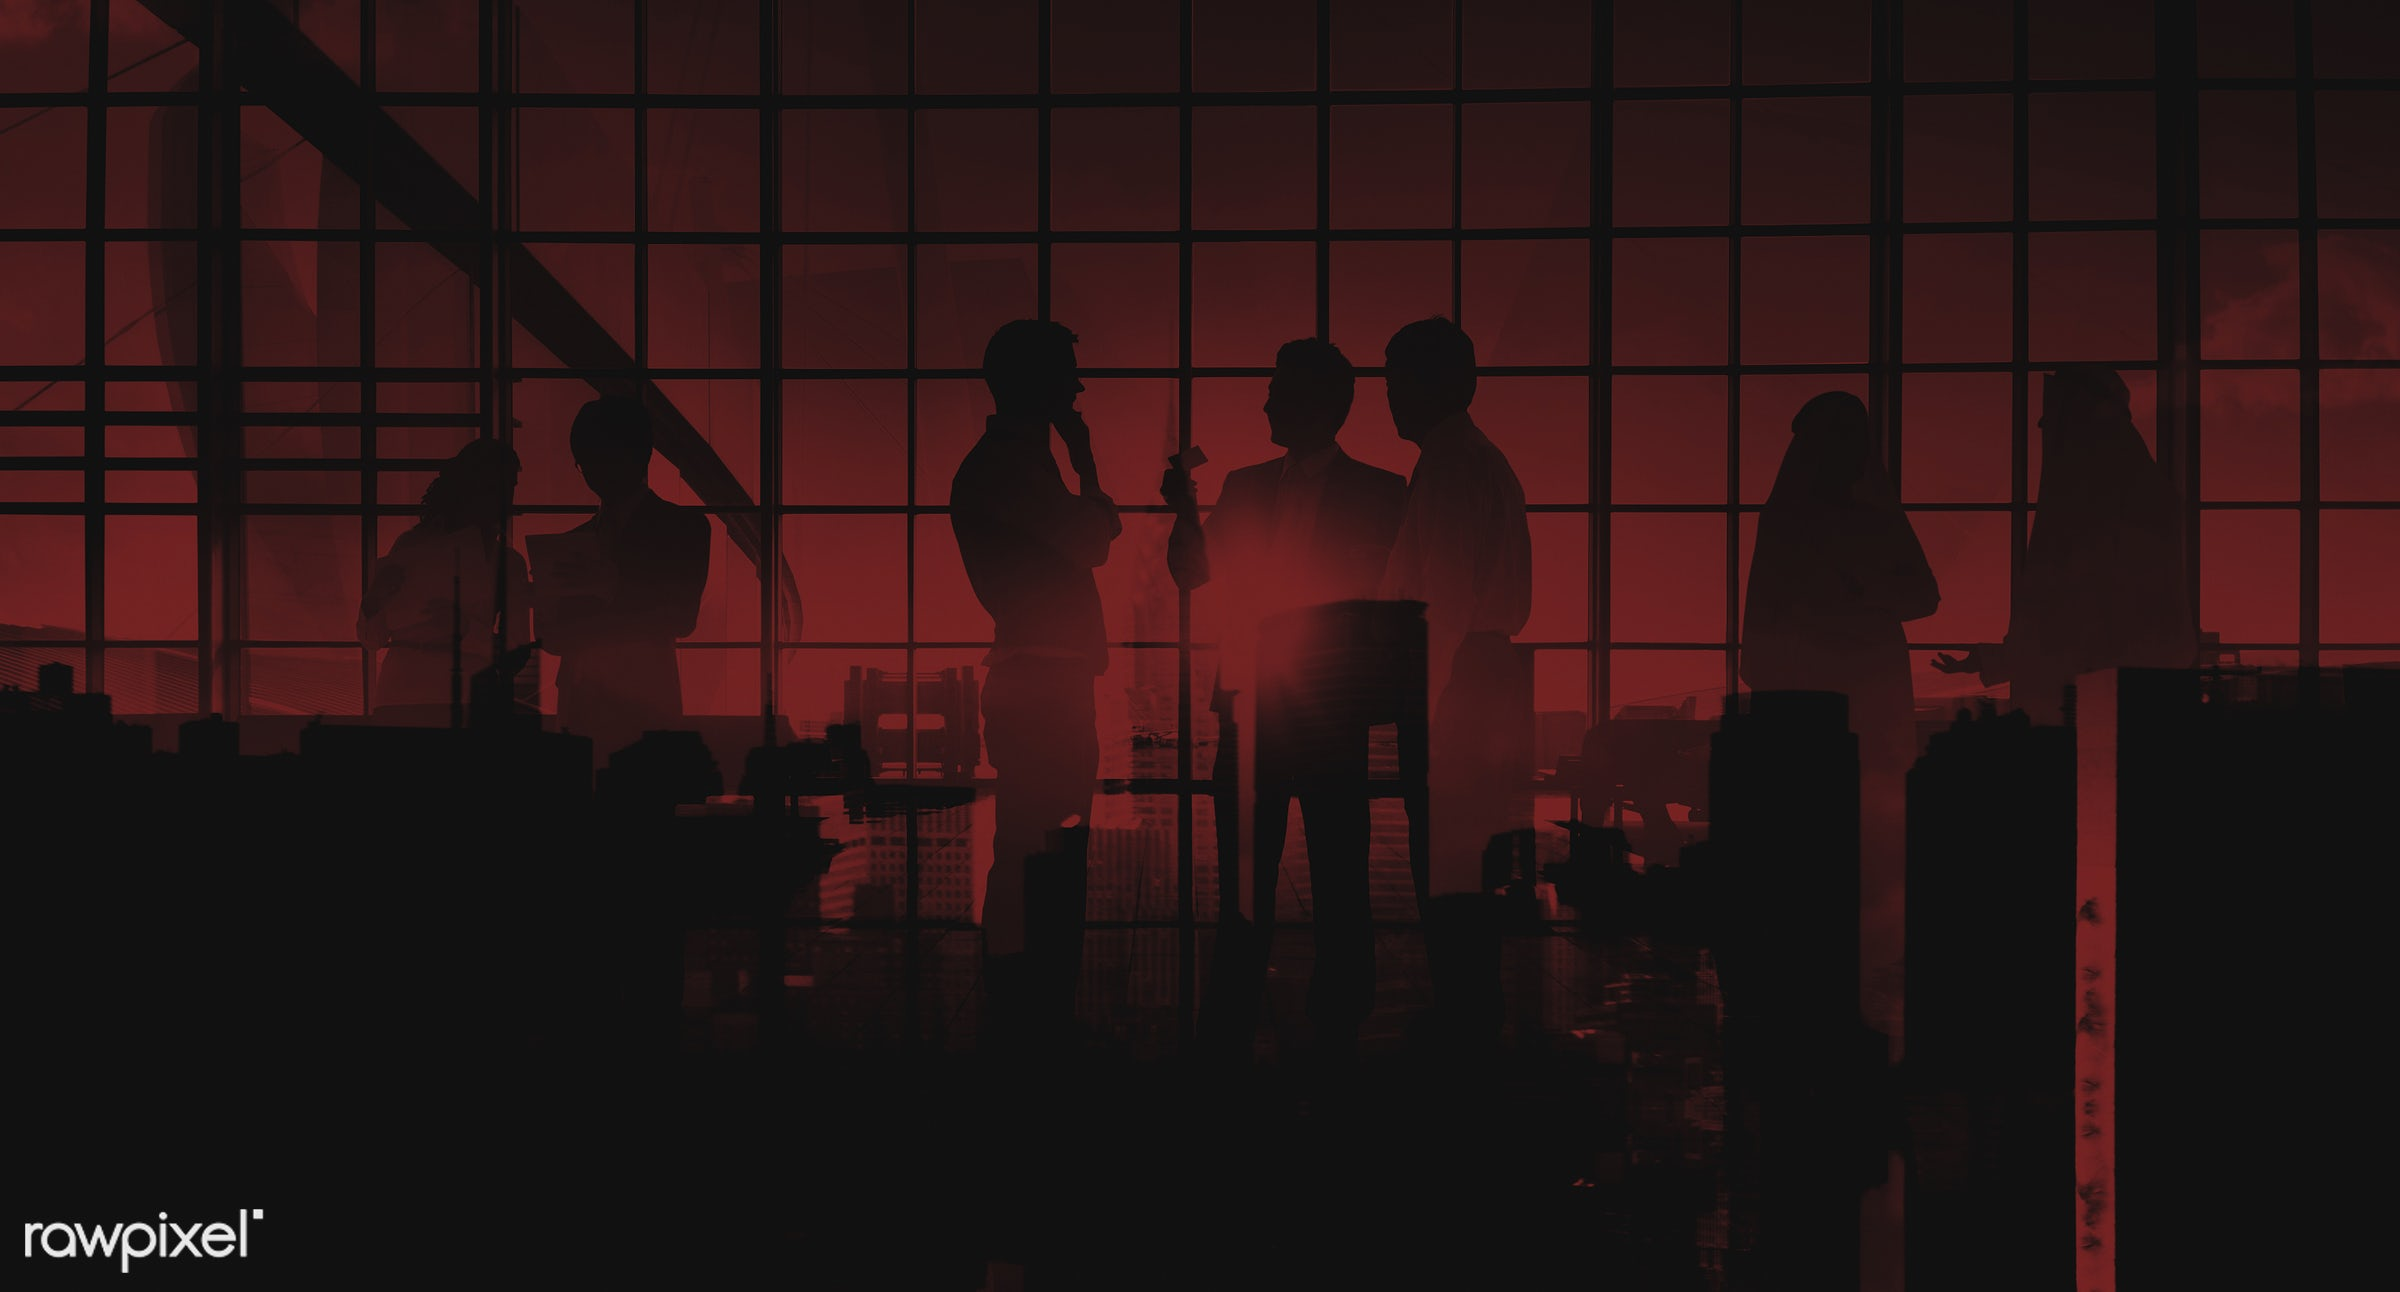 abstract, back lit, brainstorming, building interior, buildings, business, businessmen, businesswomen, career, chatting,...